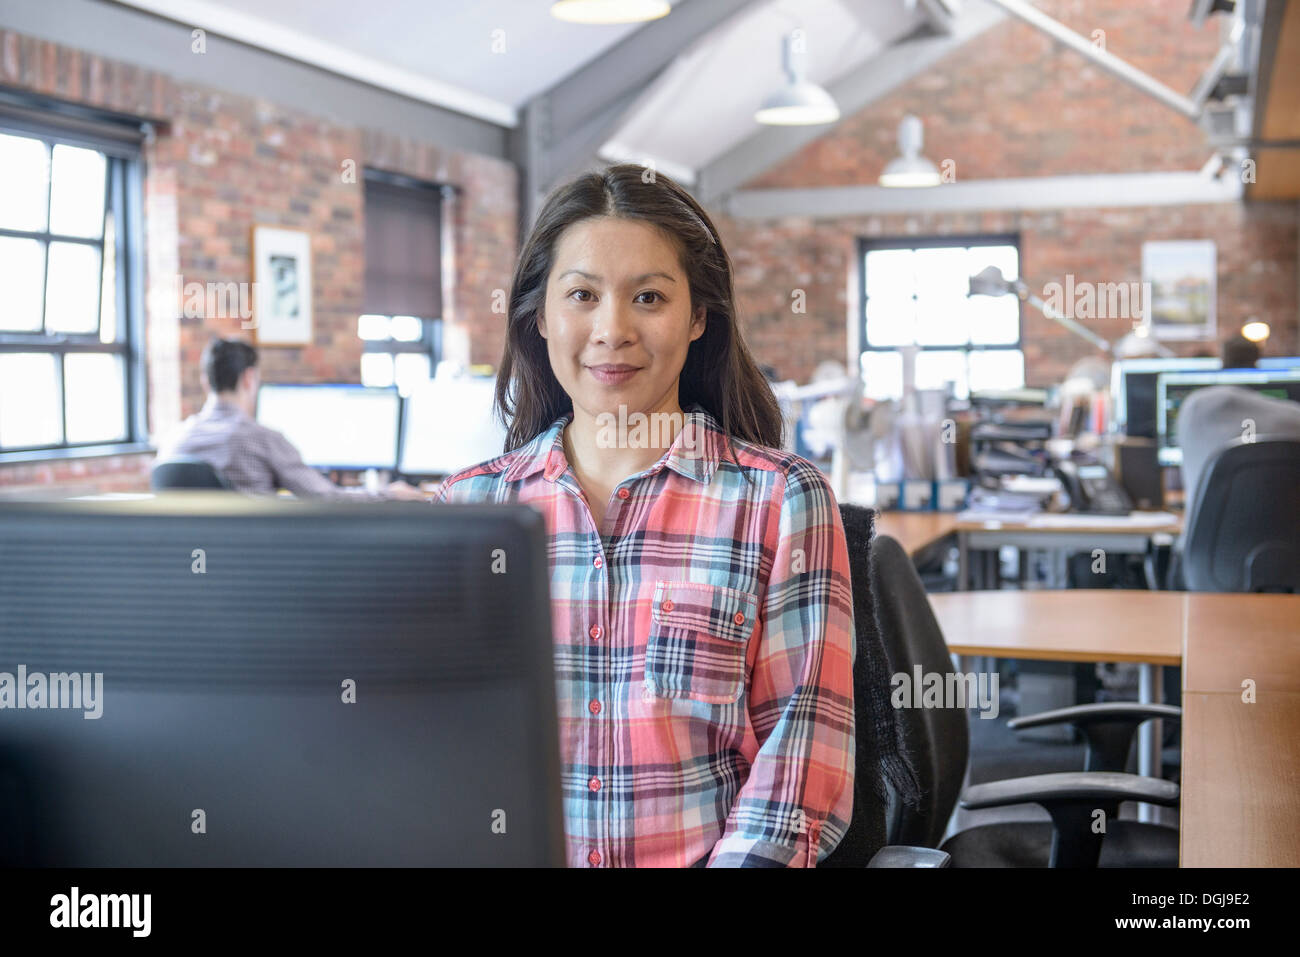 Office worker at desk, portrait - Stock Image